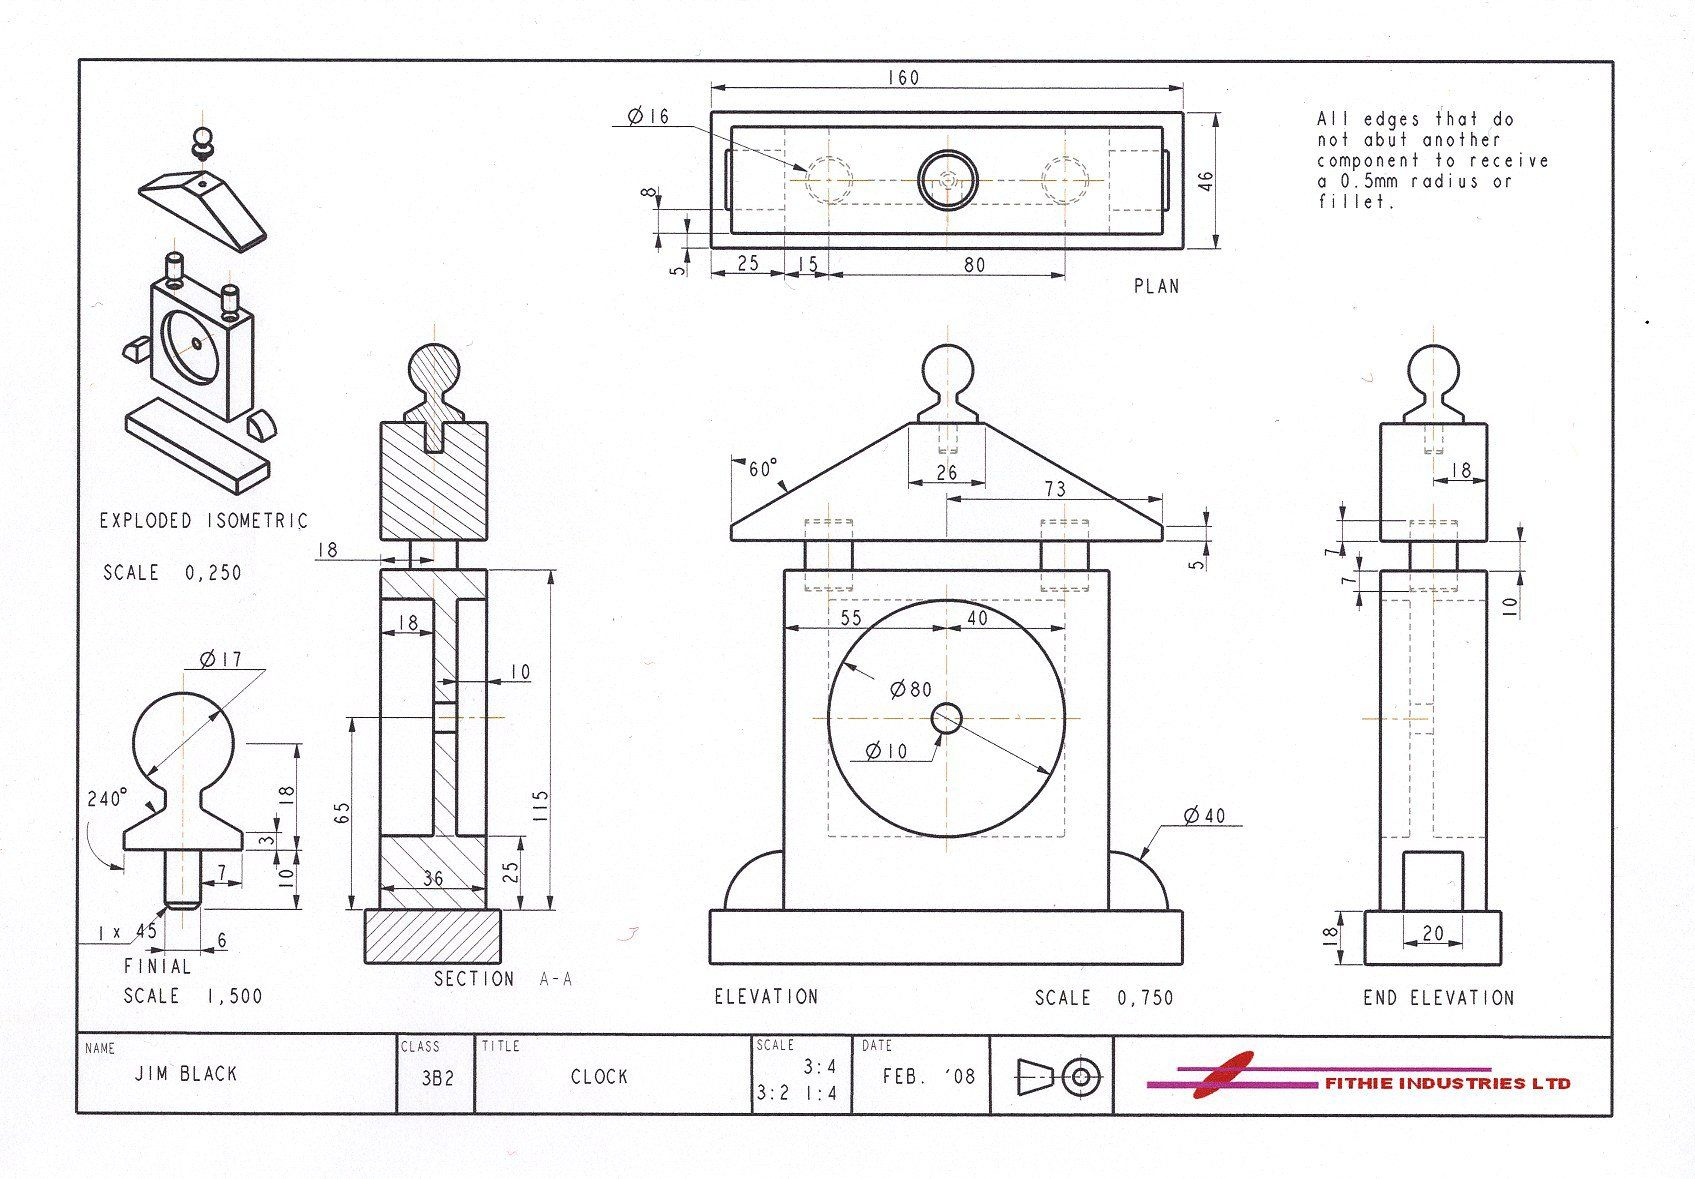 Exemplar Orthographic Drawing Of A Clock Produced In Pro